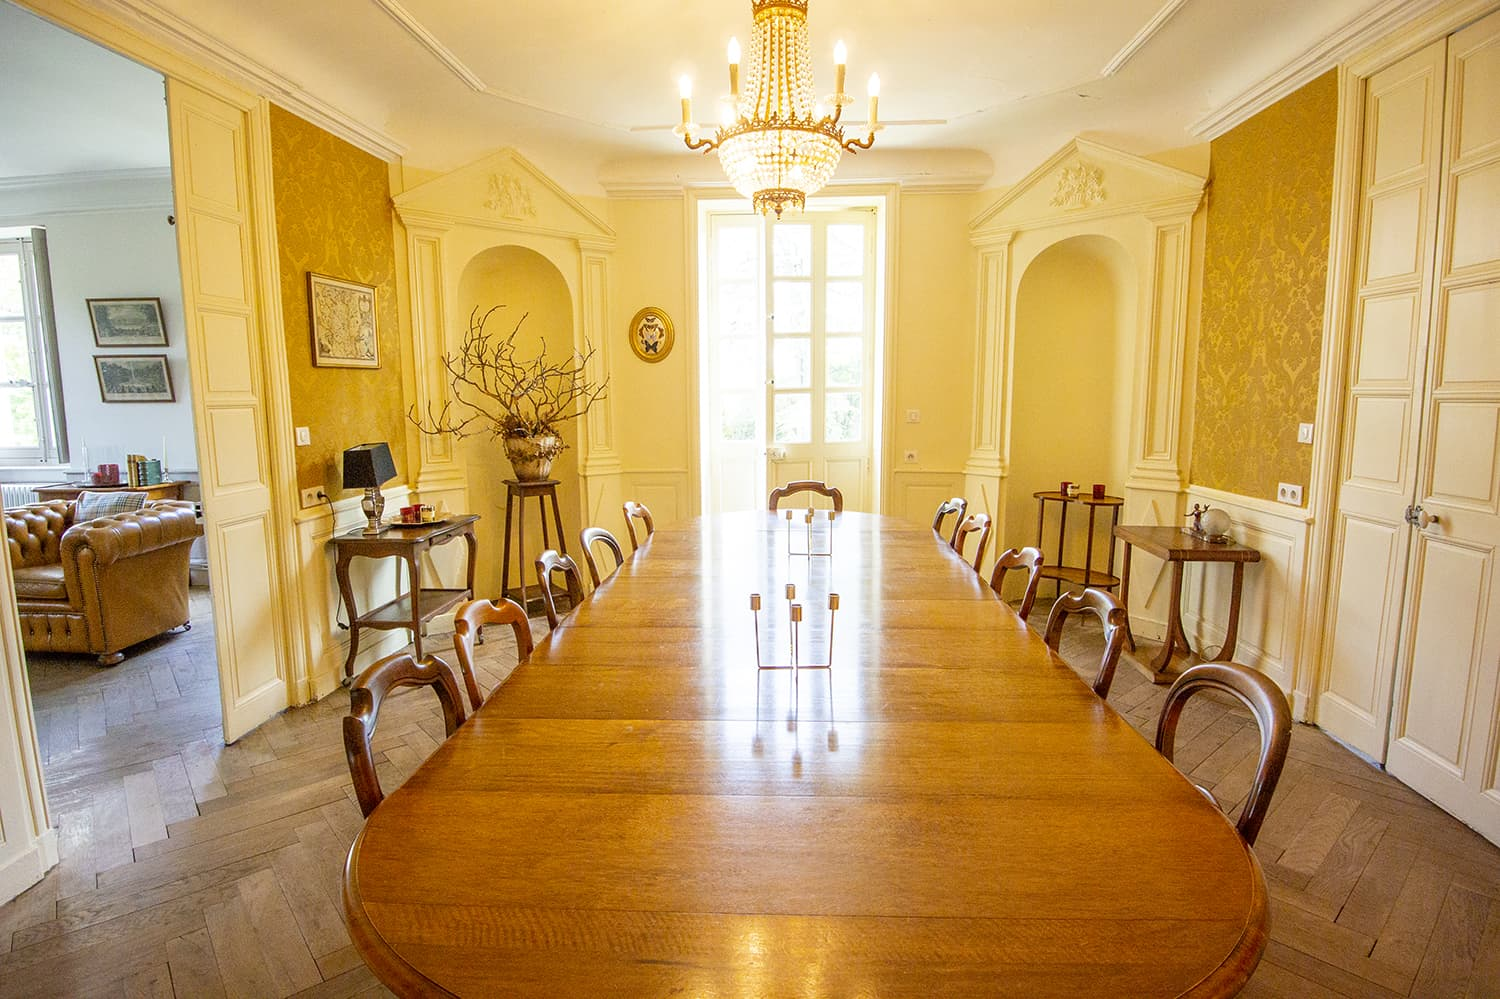 Dining room in Bourgogne-Franche-Comté self-catering accommodation